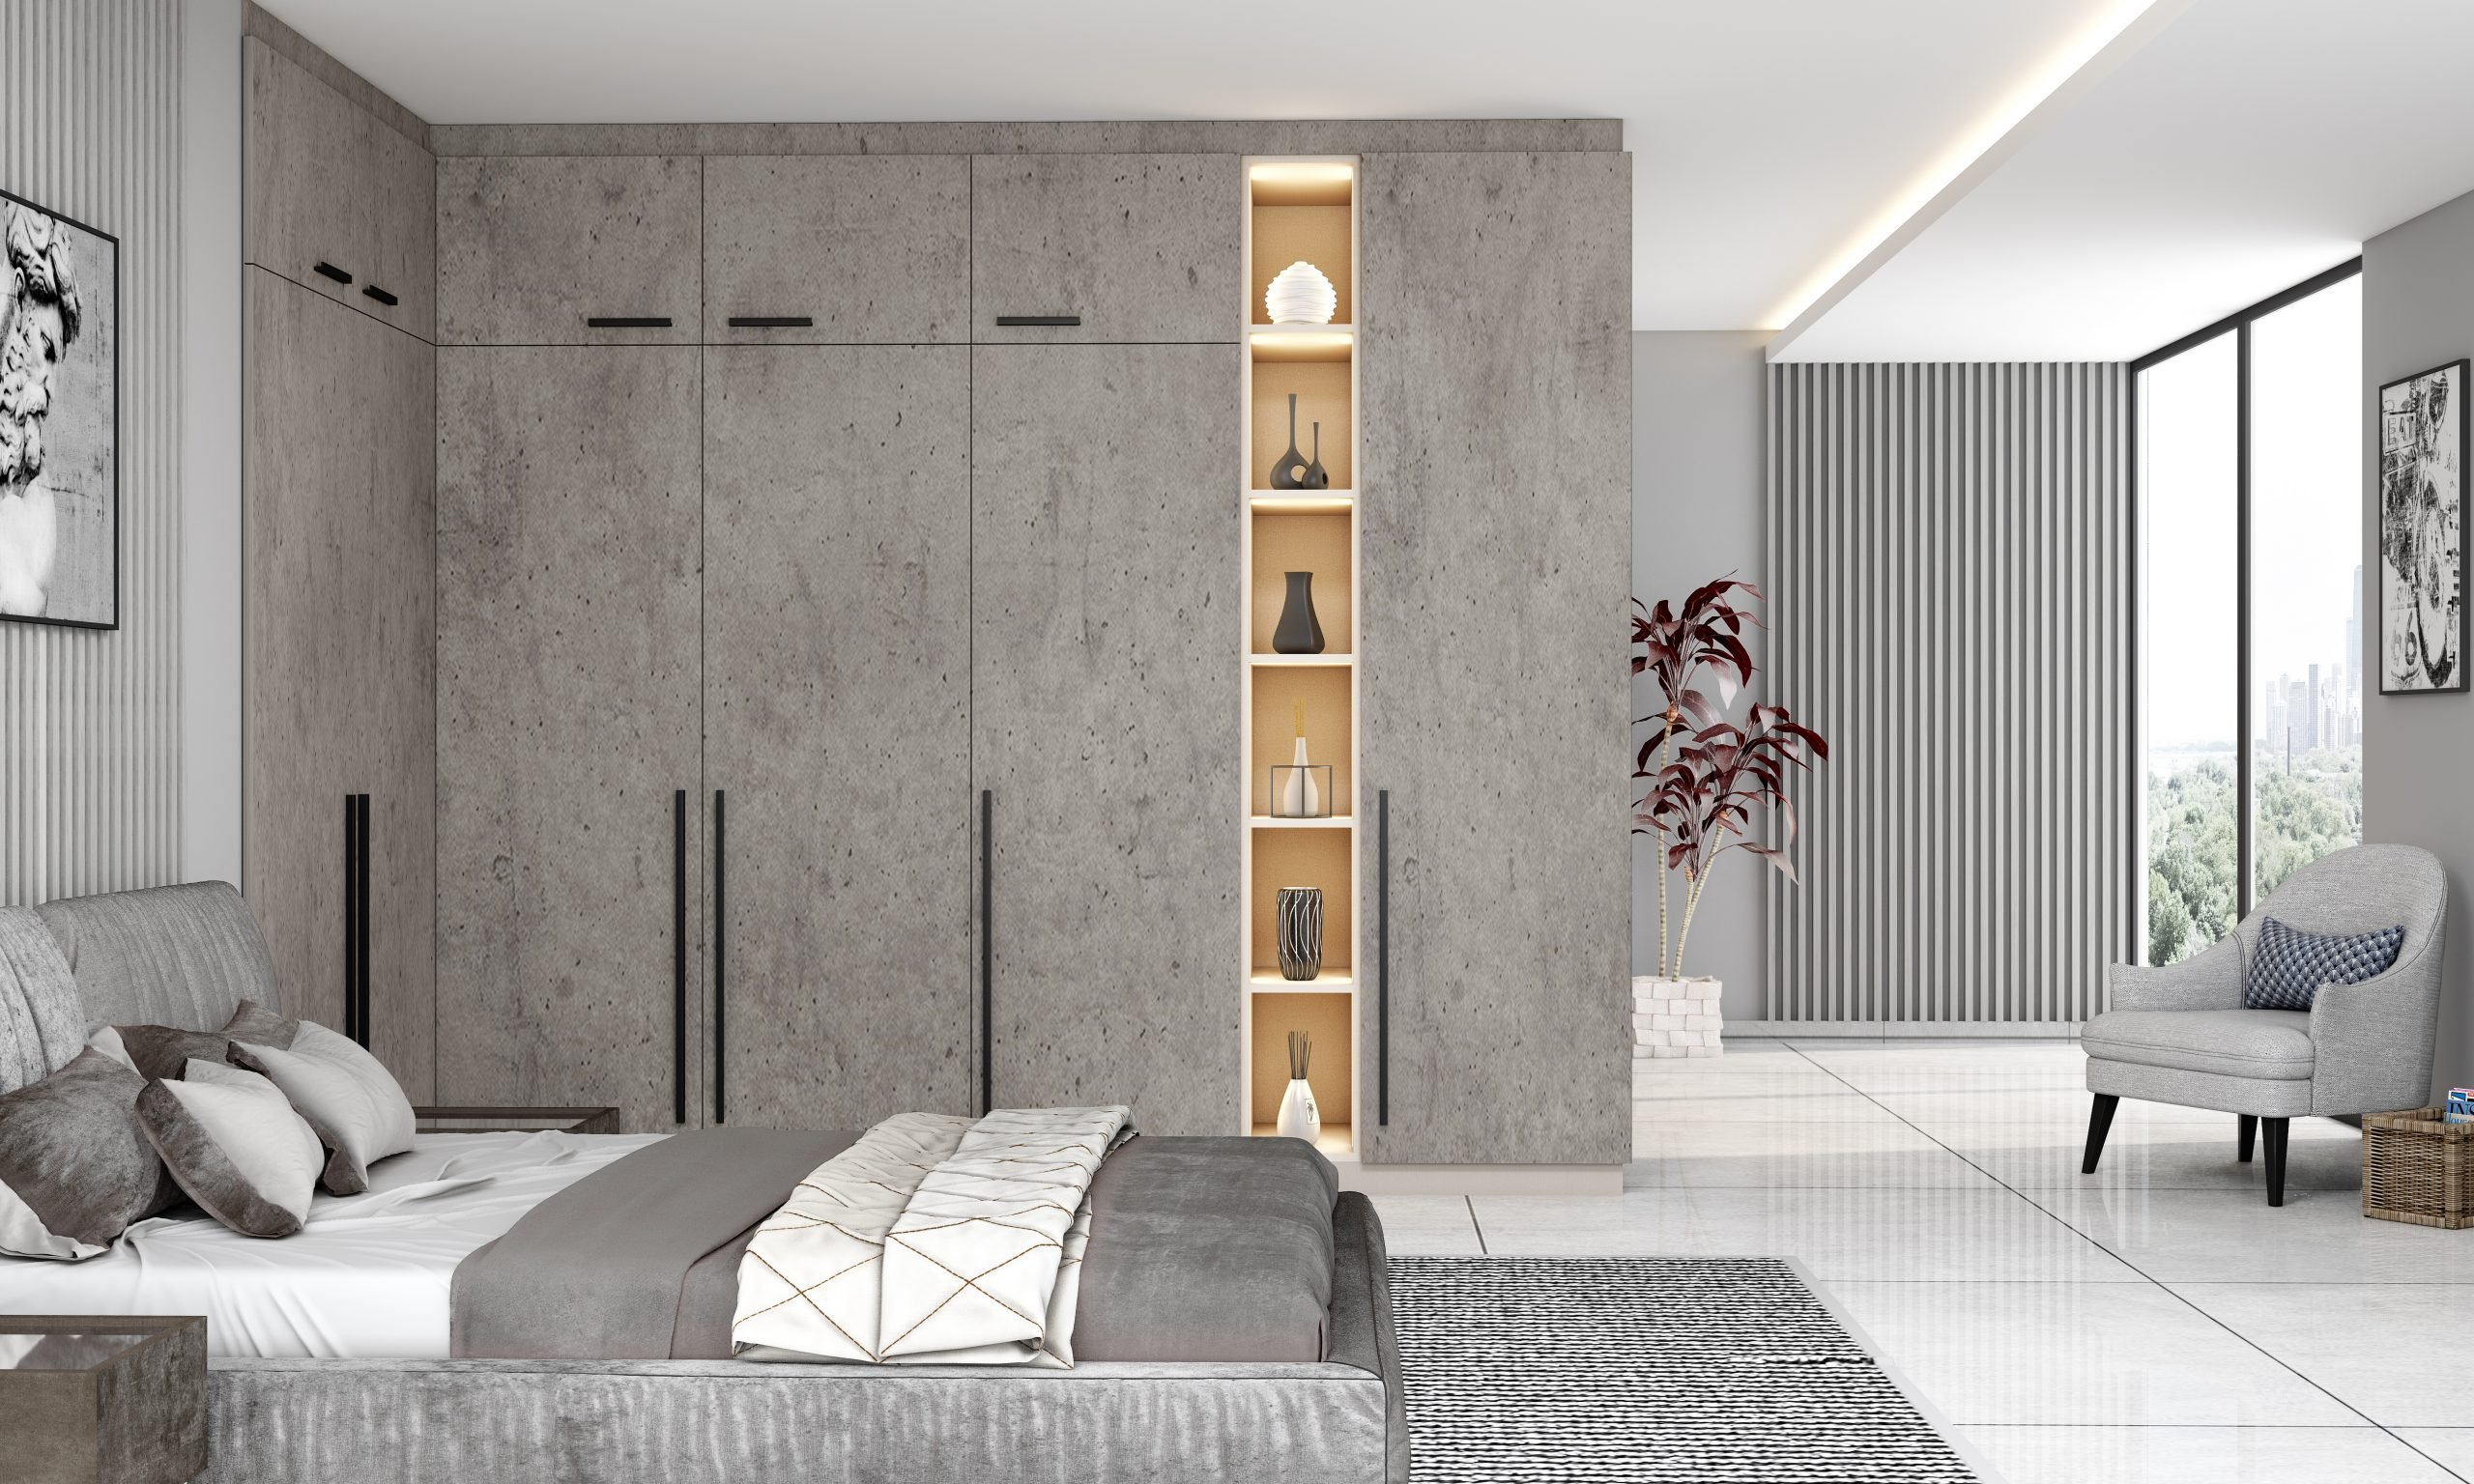 Fitted Hinged Corner Wardrobes in Bedroom With Concrete Finish